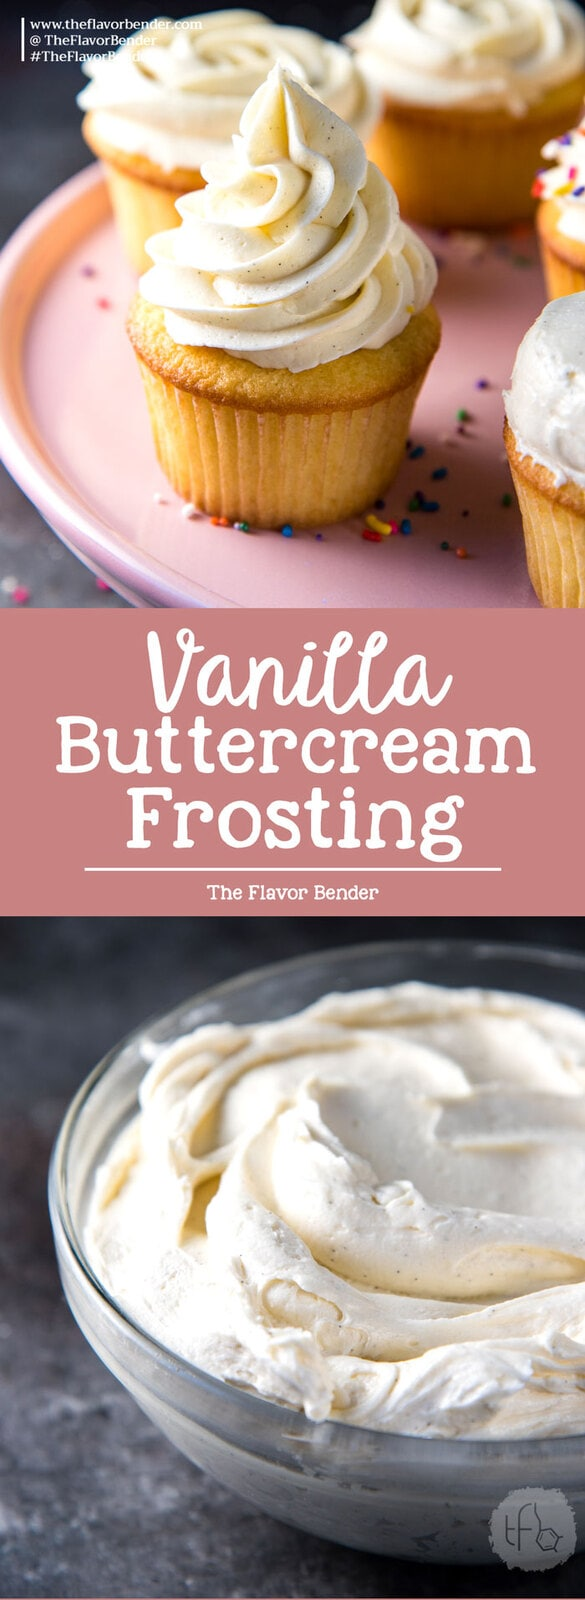 Perfect Vanilla Buttercream Frosting - creamy, fluffy, sweet, buttery, melt in your mouth frosting that is perfect to slather on anything.  #VanillaButtercreamFrosting #VanillaFrosting #Cake